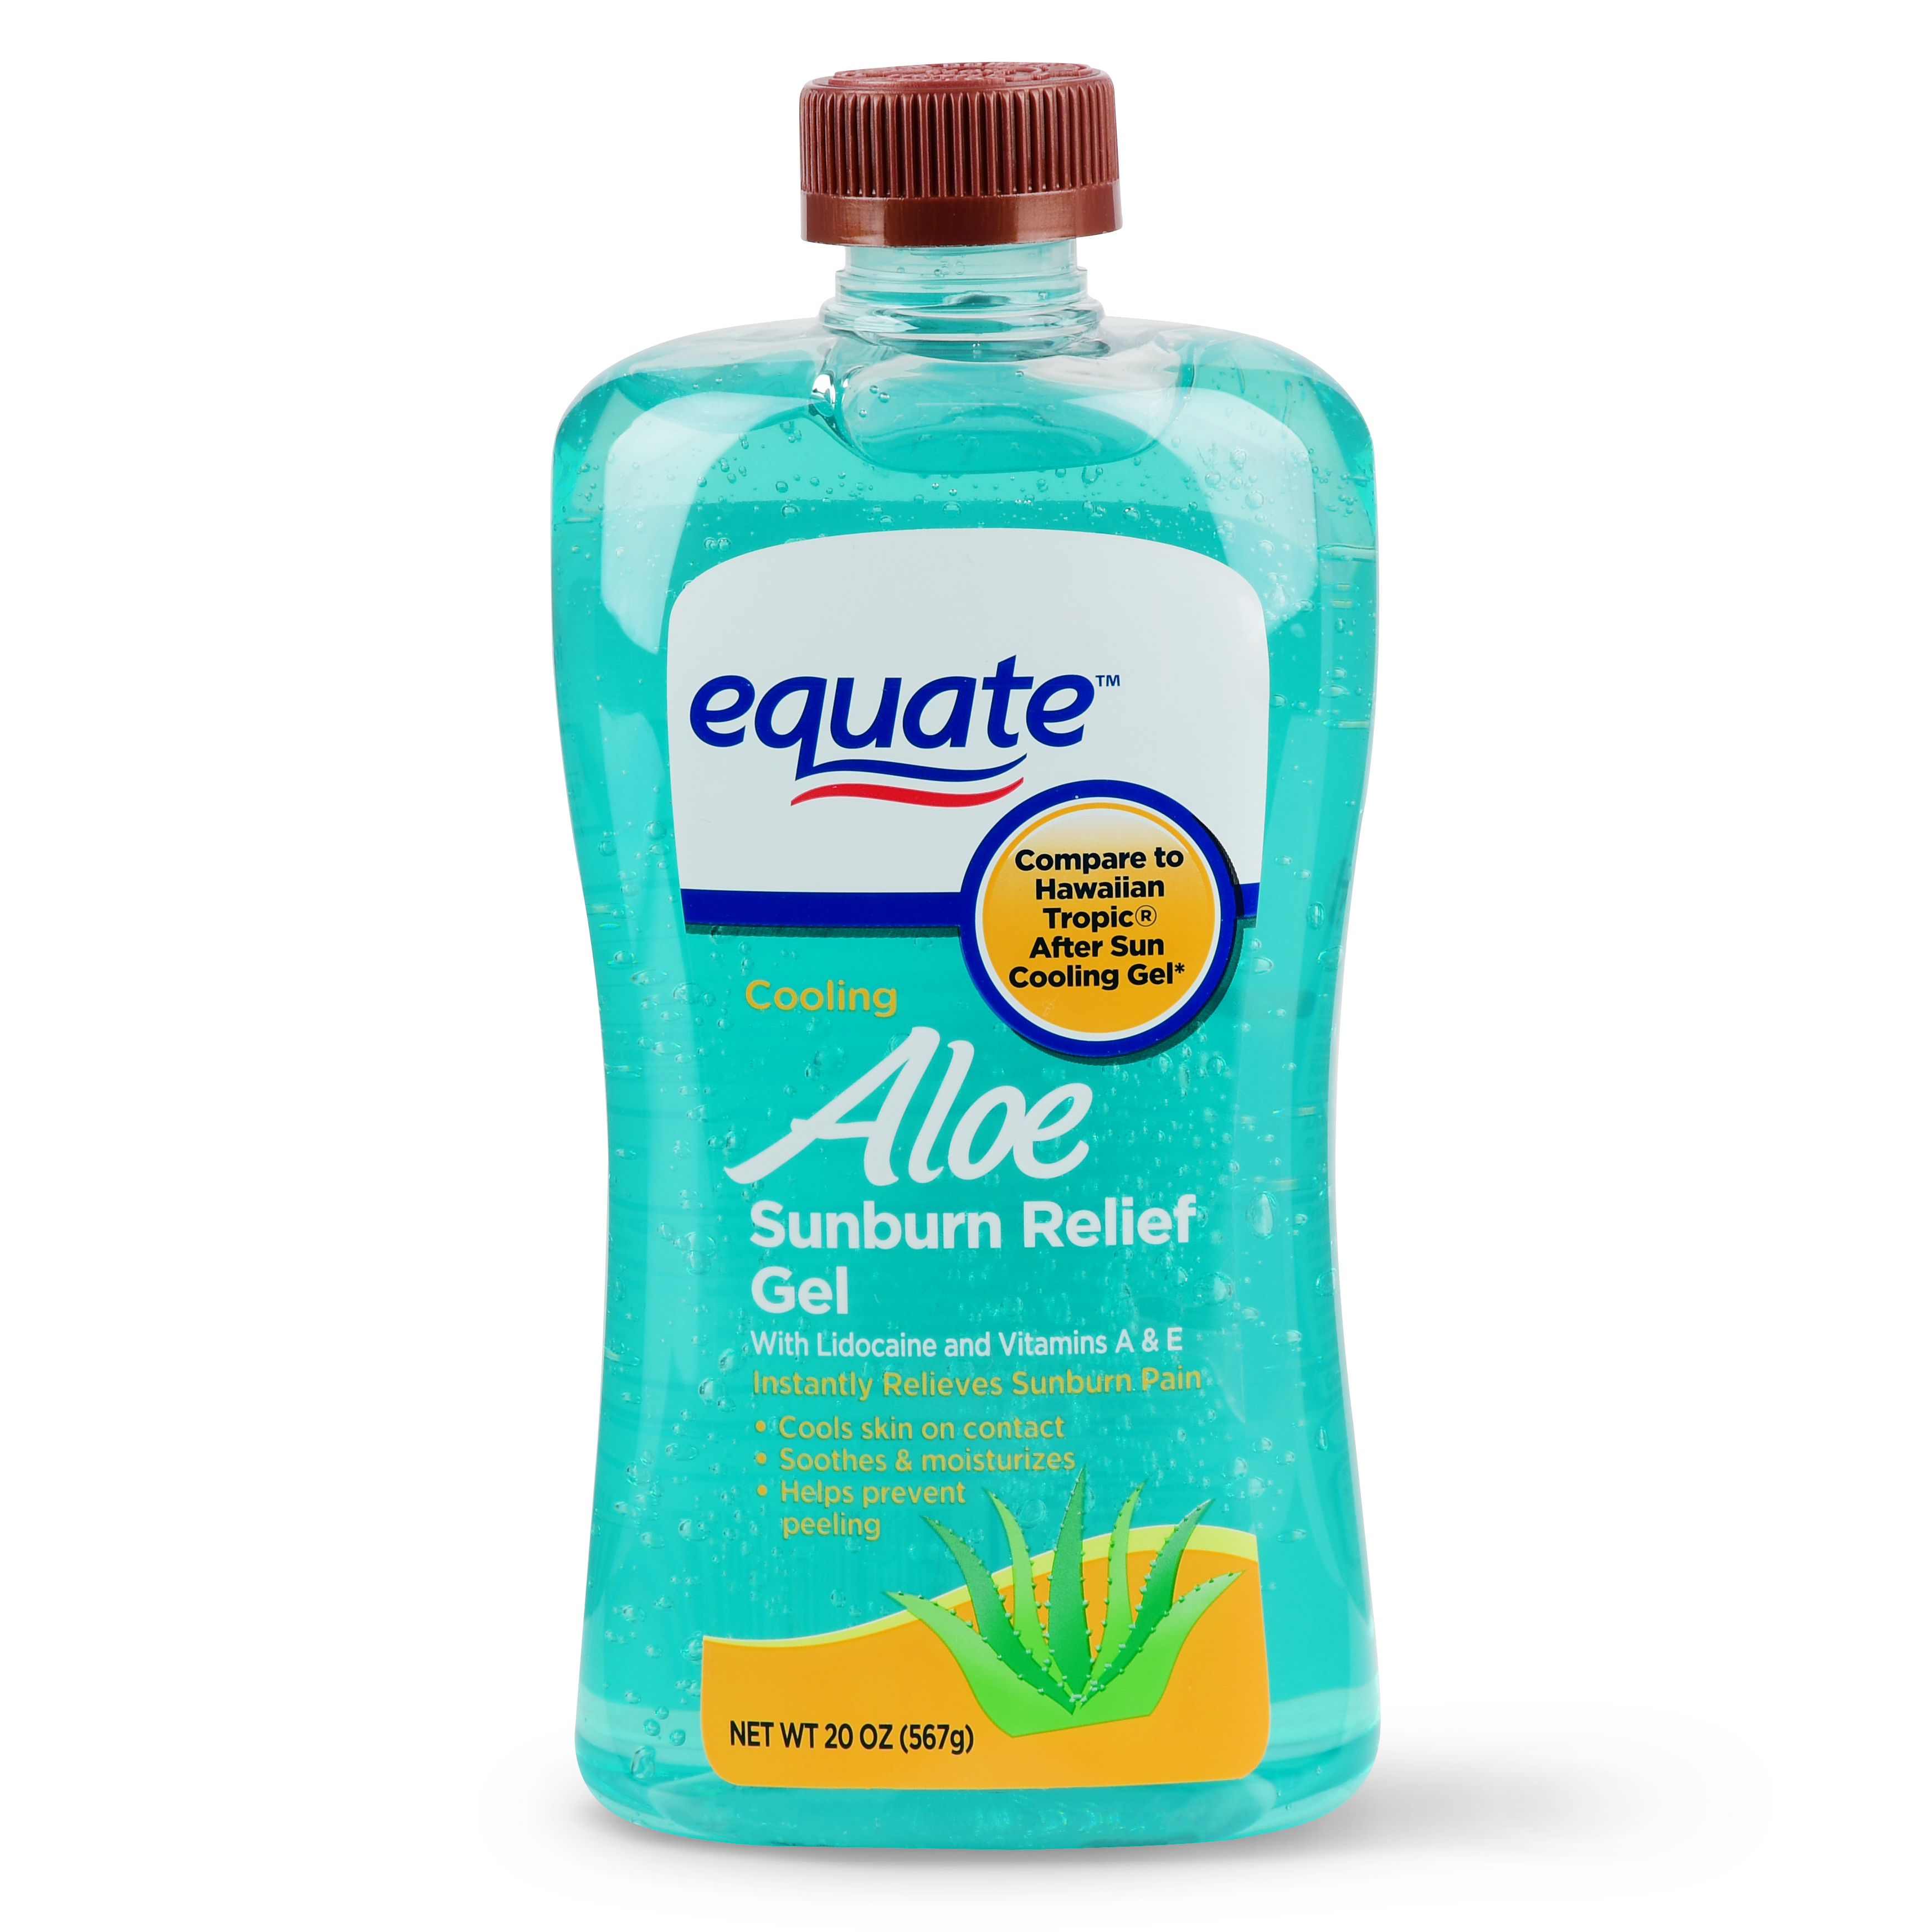 (2 pack) Equate Cooling Aloe Sunburn Relief Gel, 20 oz